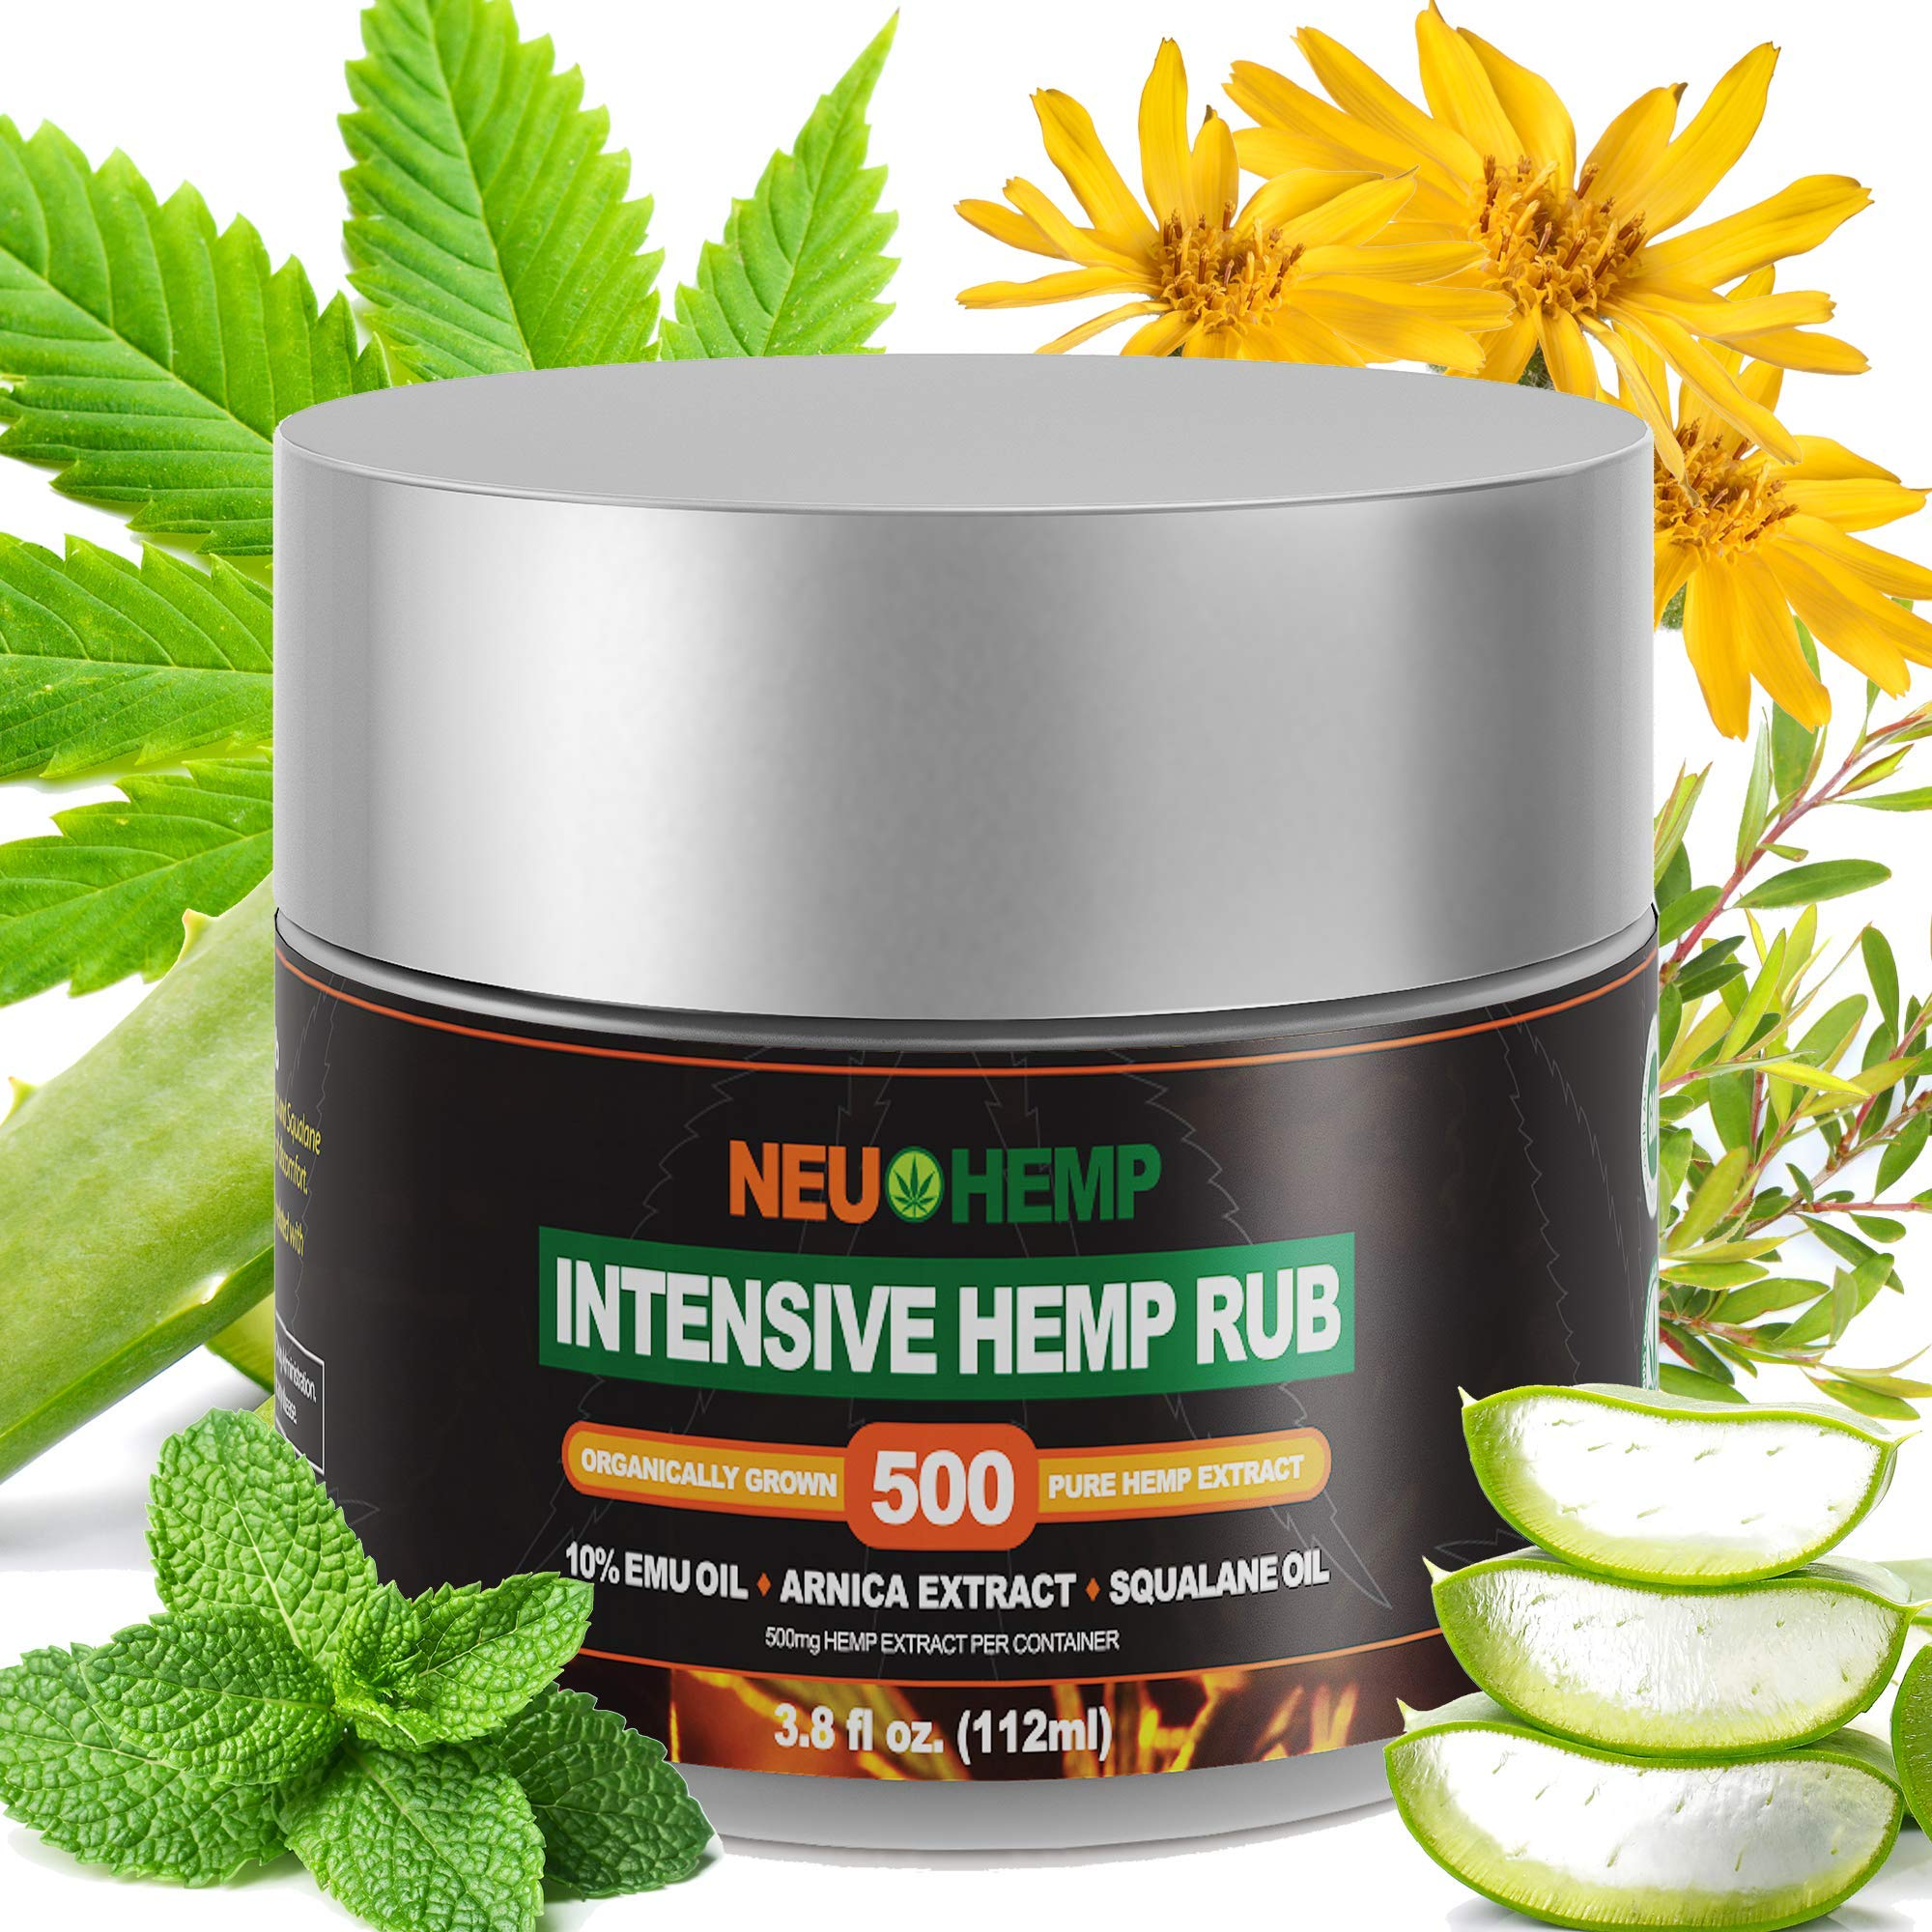 Hemp Cream Relief Rub - 500mg Organic Hemp Oil Extract Topical Soreness Reliever for Arthritis Knee Muscle Relaxer Nerve Plus + Pure EMU Arnica Montana Squalane Daily Lotion Salve Balm Ointment by NeuHemp